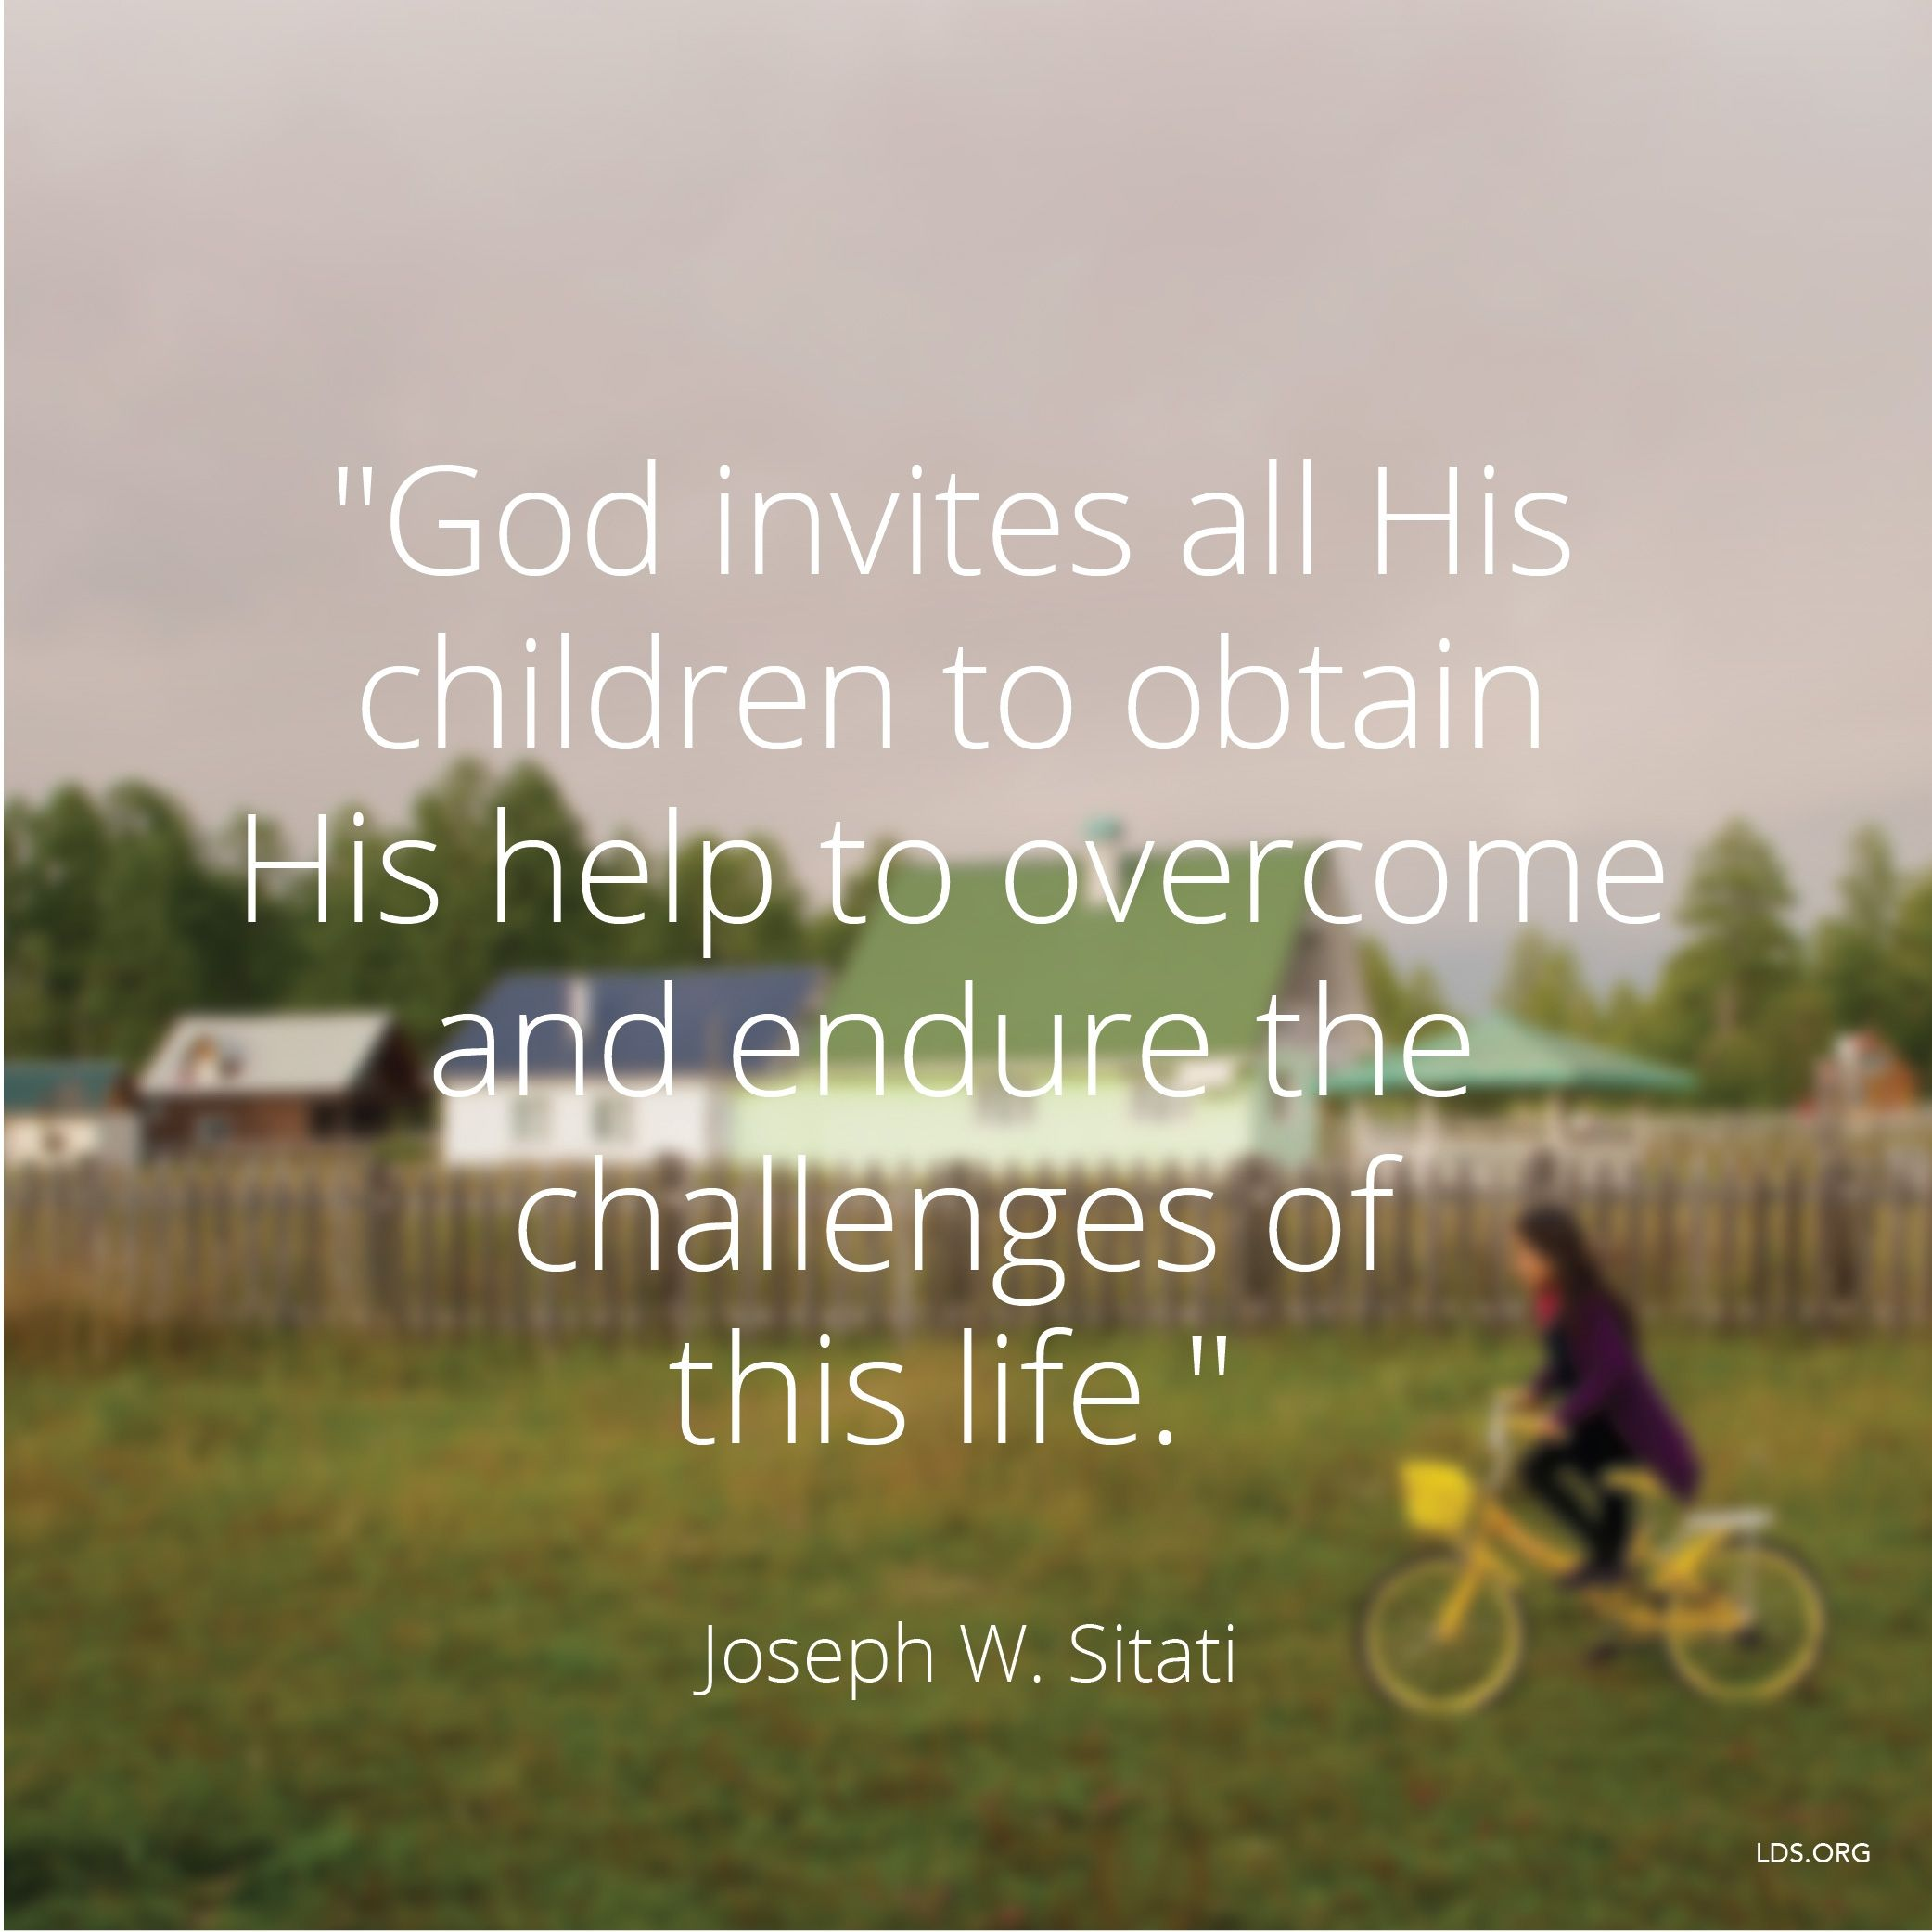 """""""God invites all His children to obtain His help to overcome and endure the challenges of this life.""""—Elder Joseph W. Sitati, """"Be Fruitful, Multiply, and Subdue the Earth"""""""